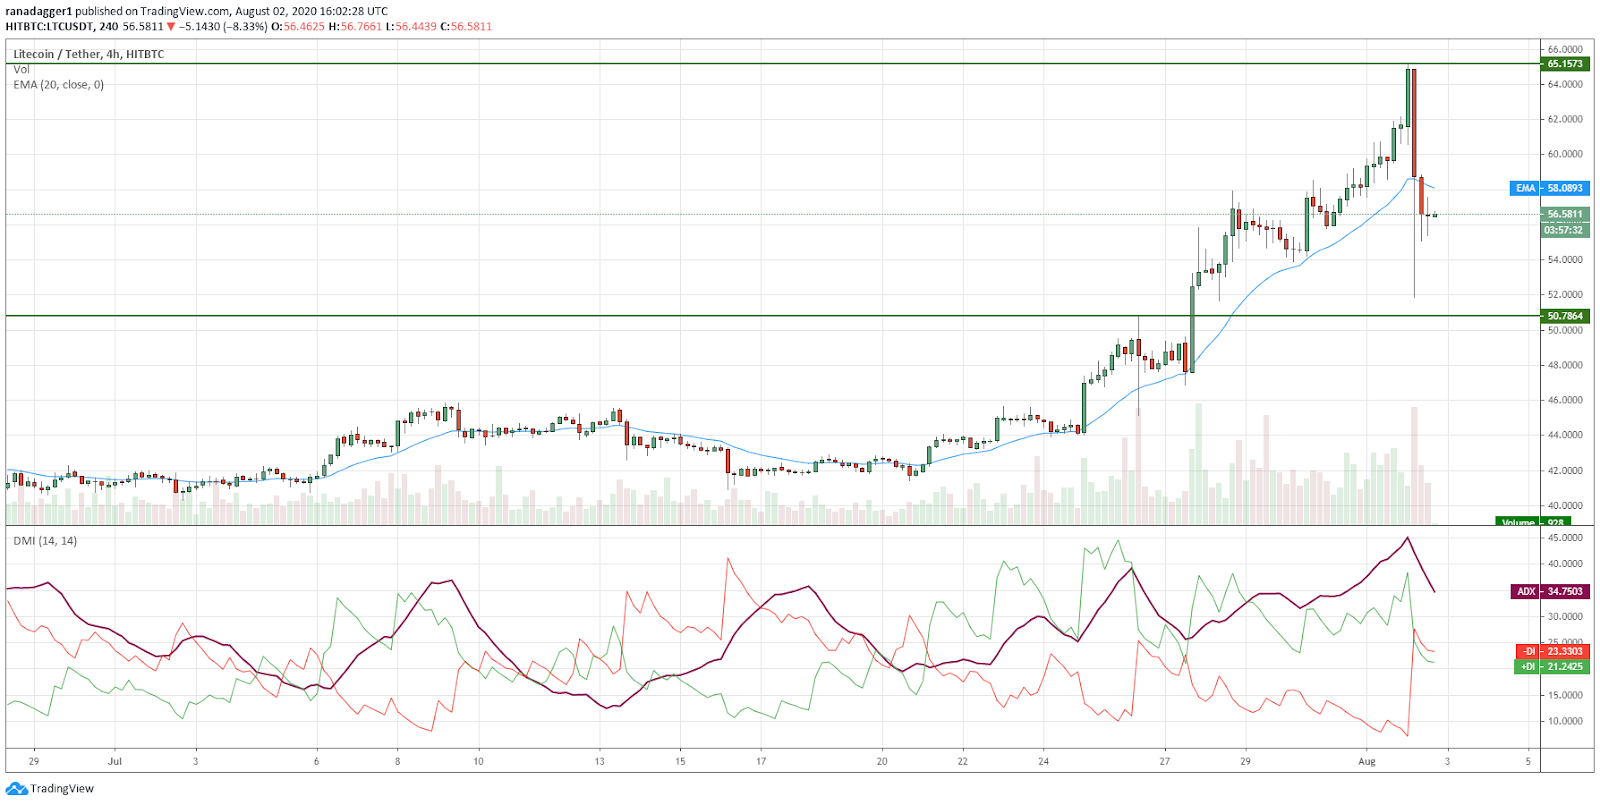 LTC/USD 4-hour chart